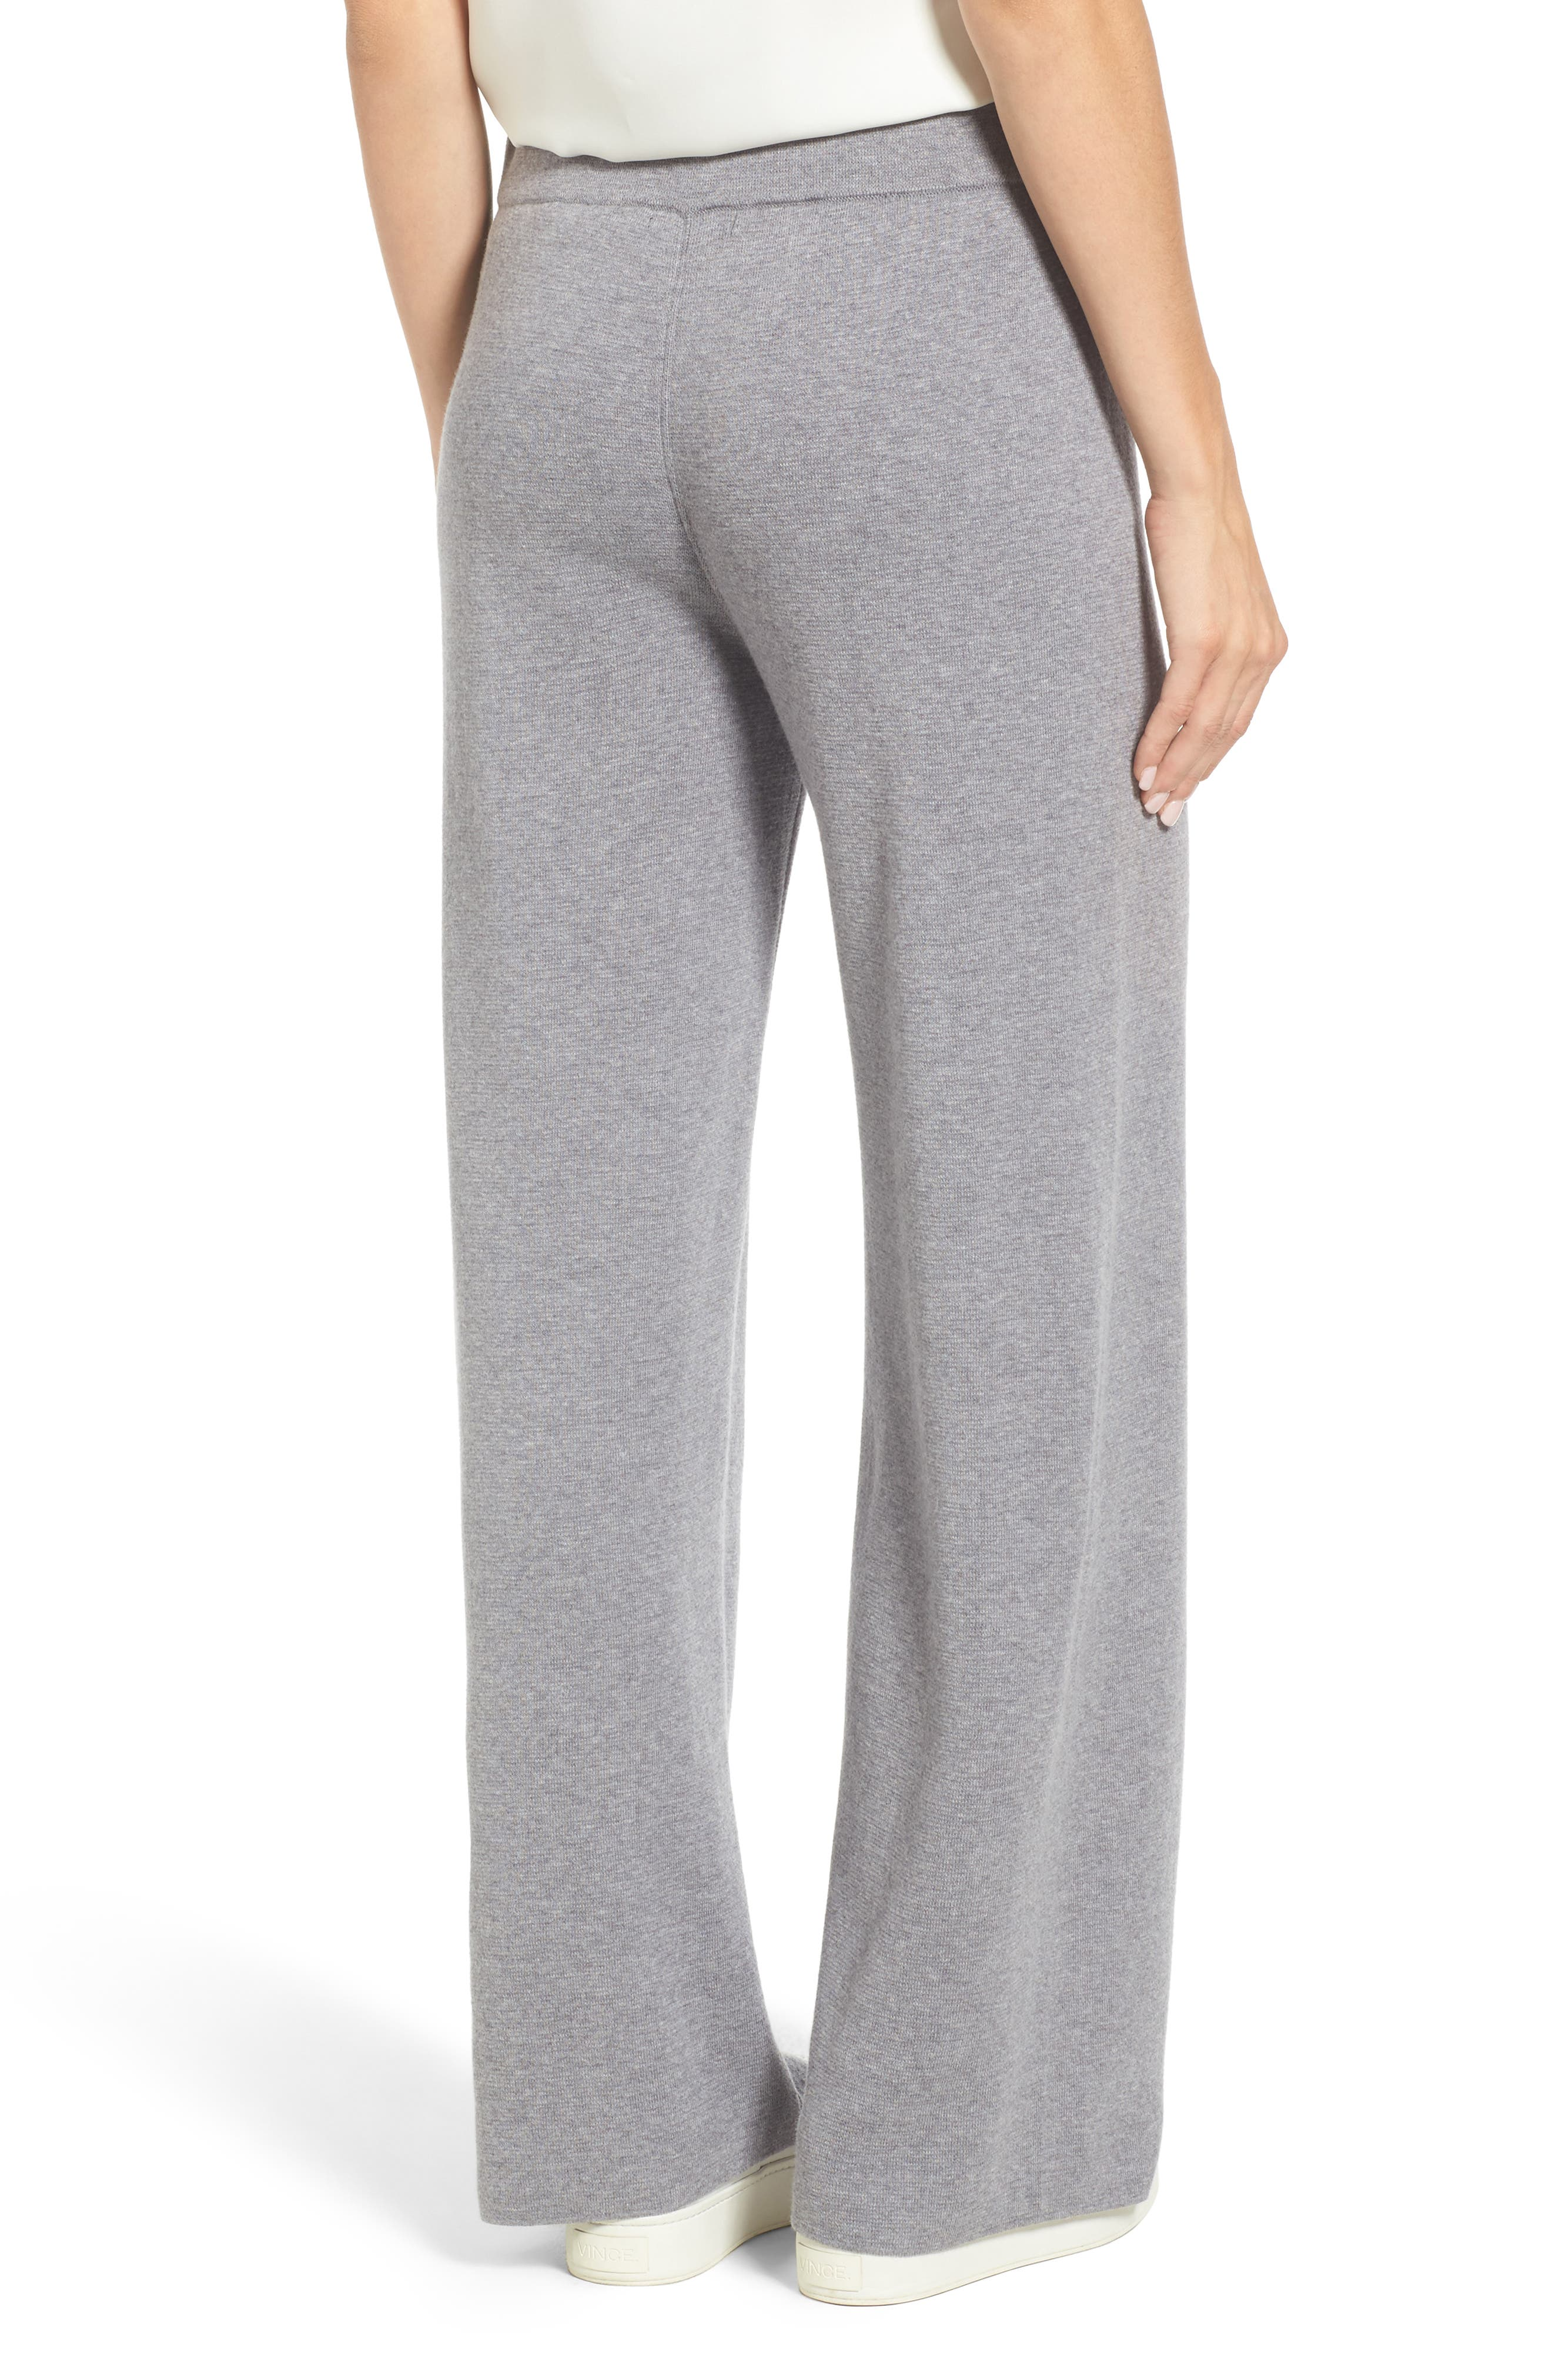 Heathered Knit Pants,                             Alternate thumbnail 2, color,                             Warm Grey